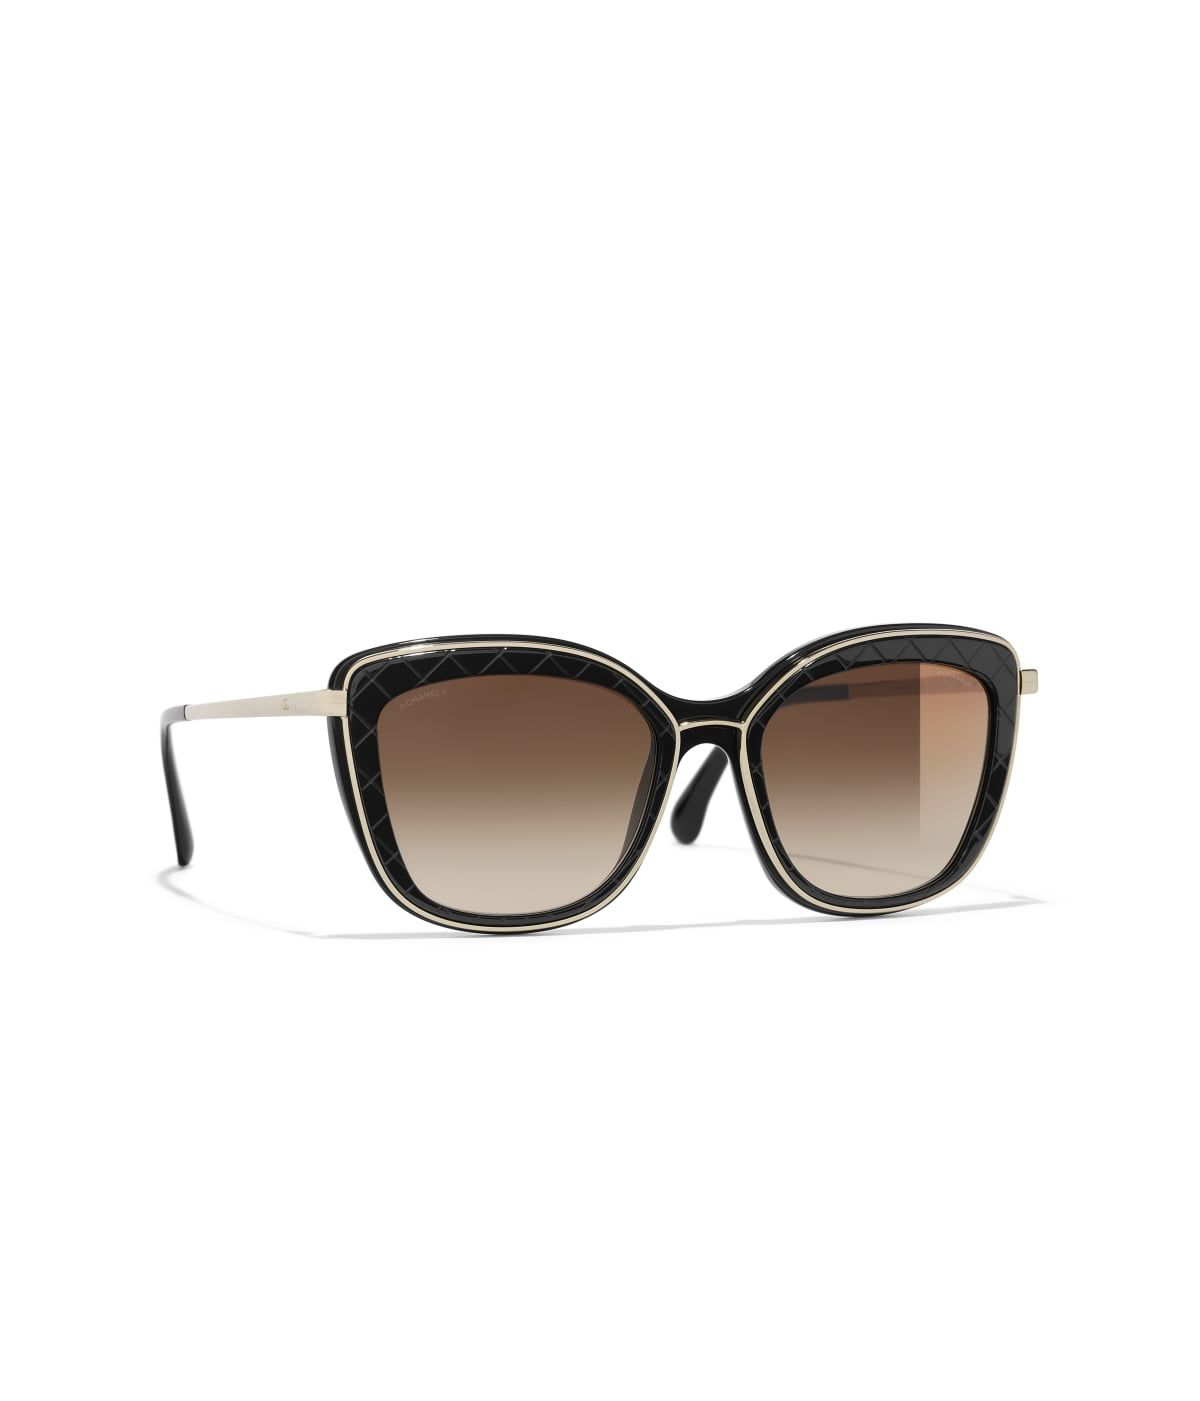 54c7521f4a8 Sunglasses CHANEL   Butterfly Sunglasses